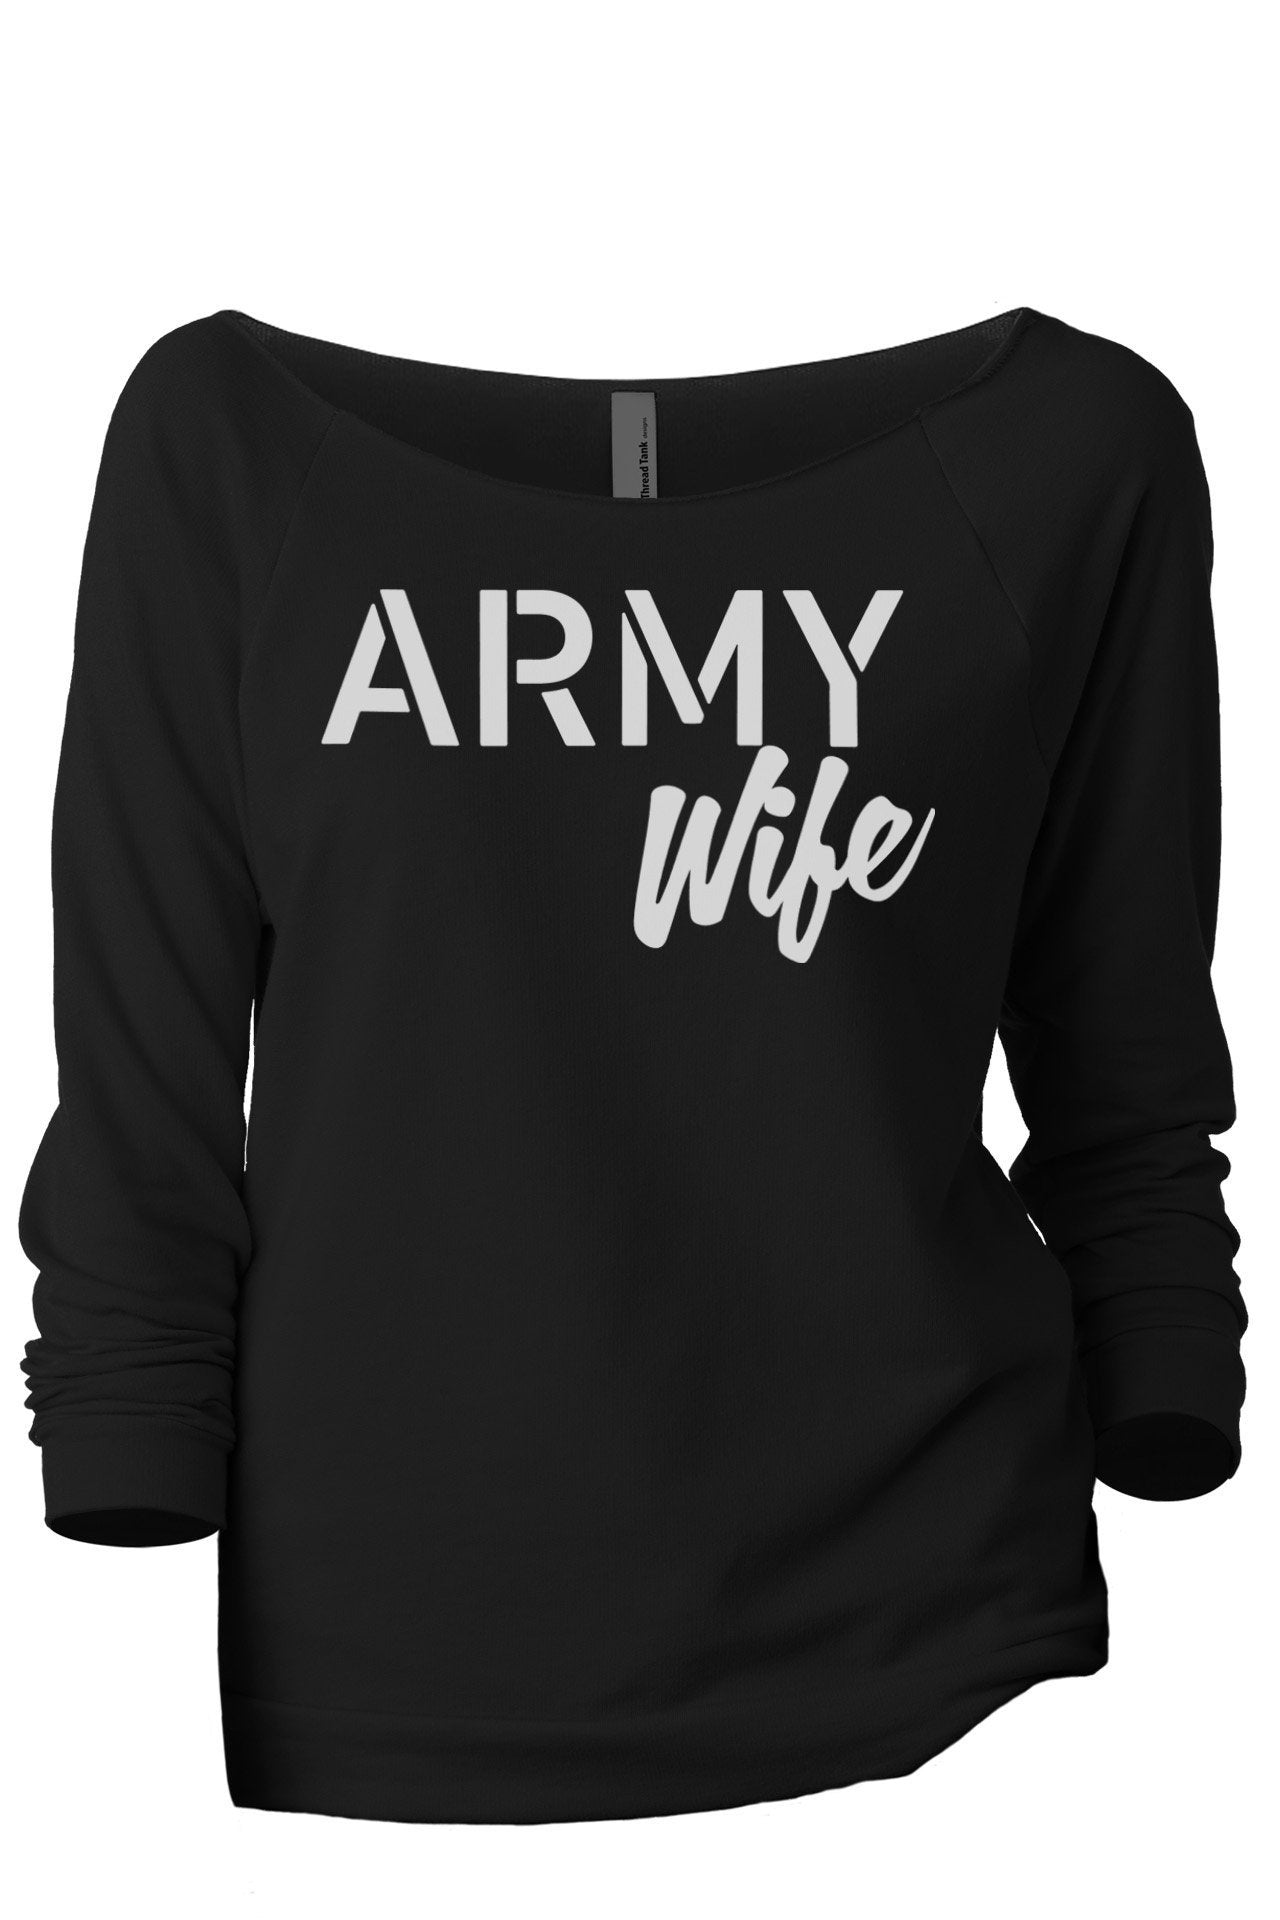 Army Wife Women's Graphic Printed Lightweight Slouchy 3/4 Sleeves Sweatshirt Sport Grey